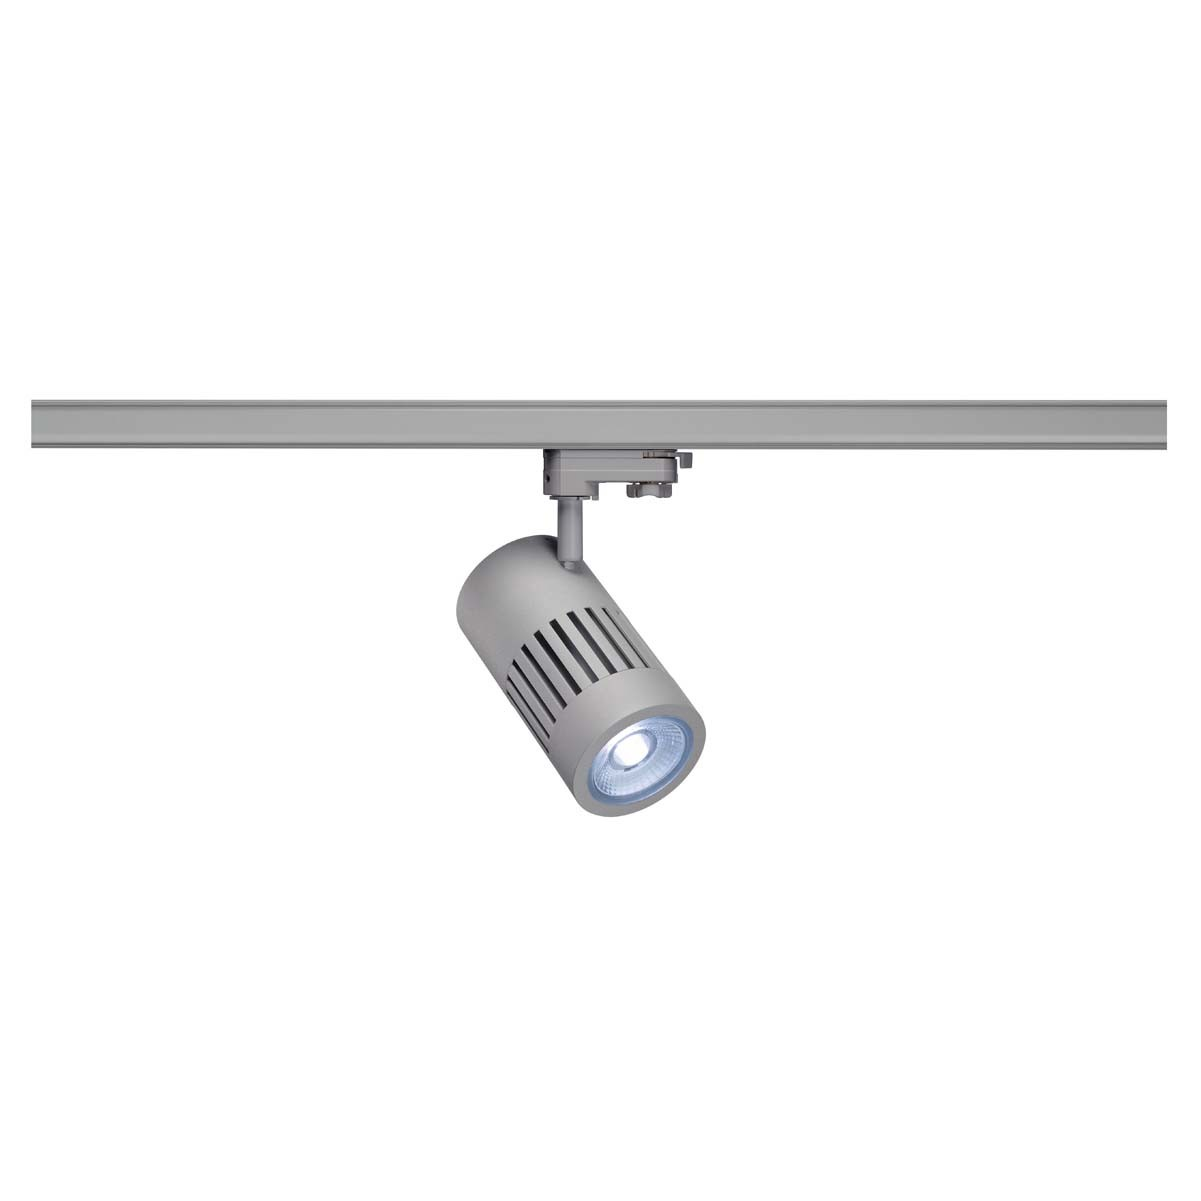 SLV 176024 STRUCTEC LED 24W, round, silver, 4000K, 36°, incl. 3-phase adapter